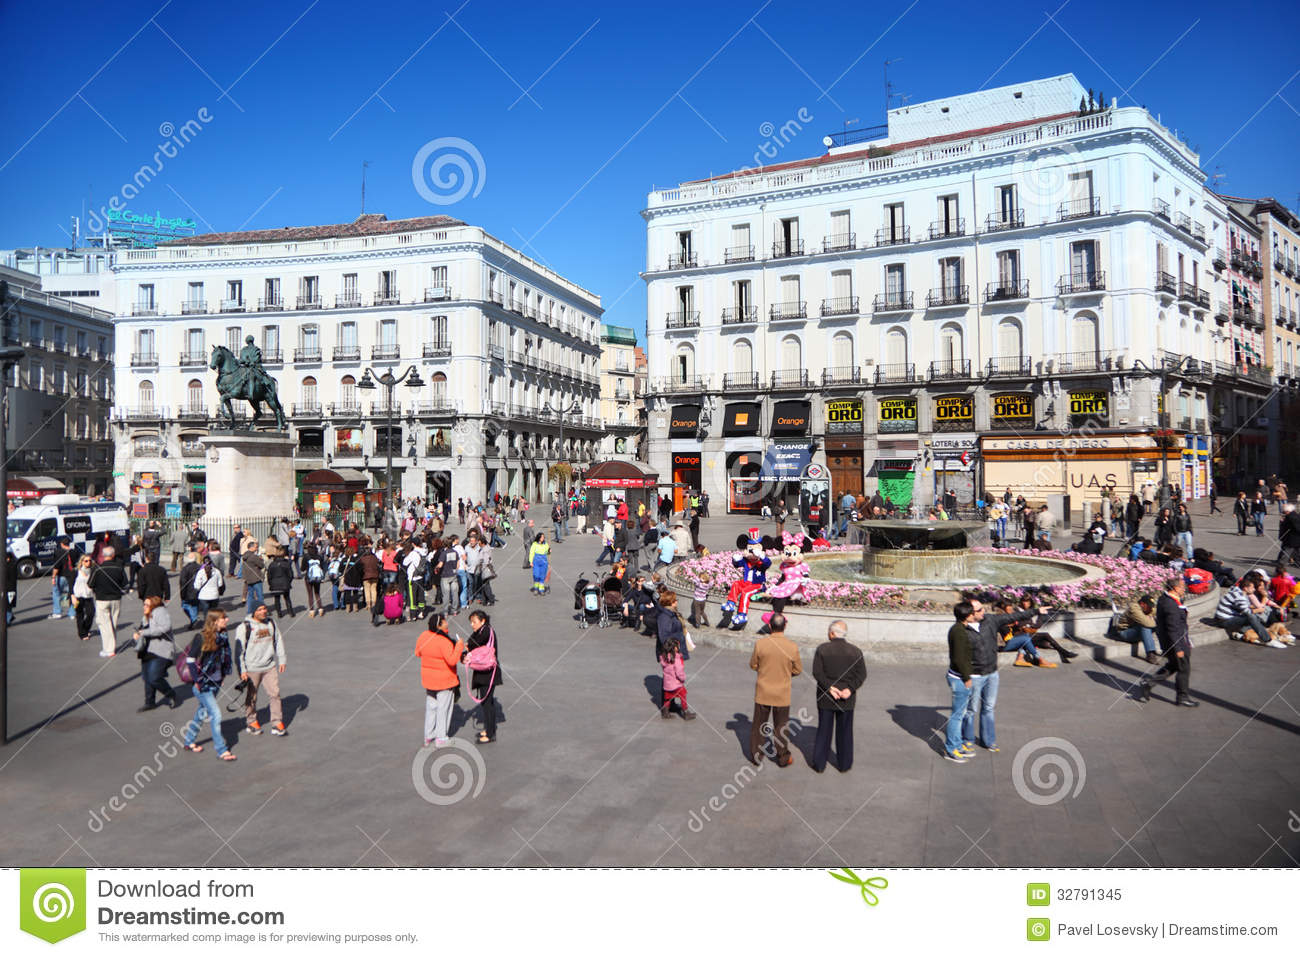 People at puerta del sol near monument editorial image for Puerta del sol 9 madrid